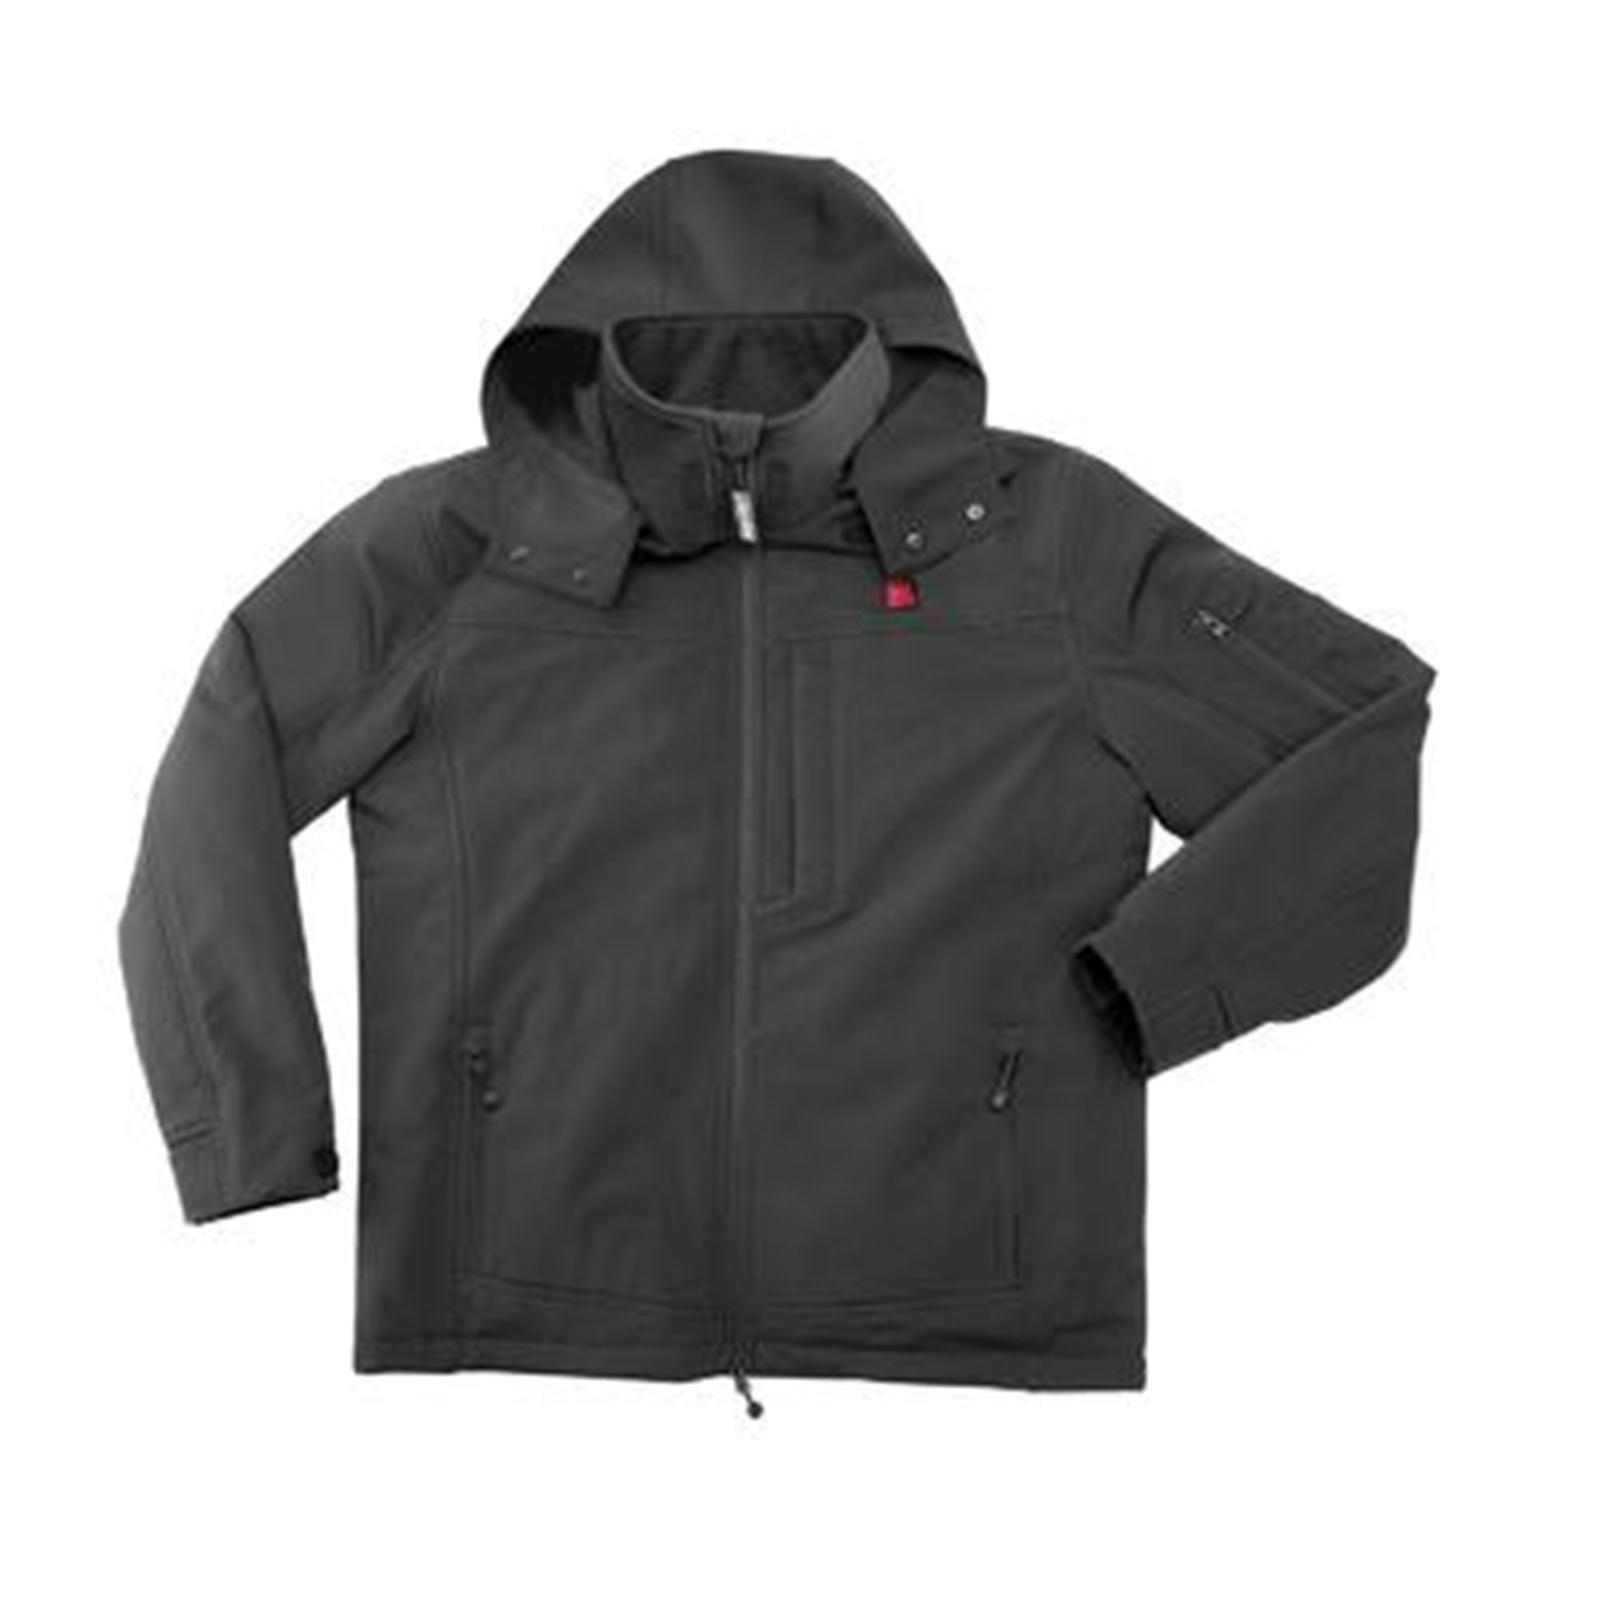 craftsman craftsman menu0027s heated jacket xcvpoue